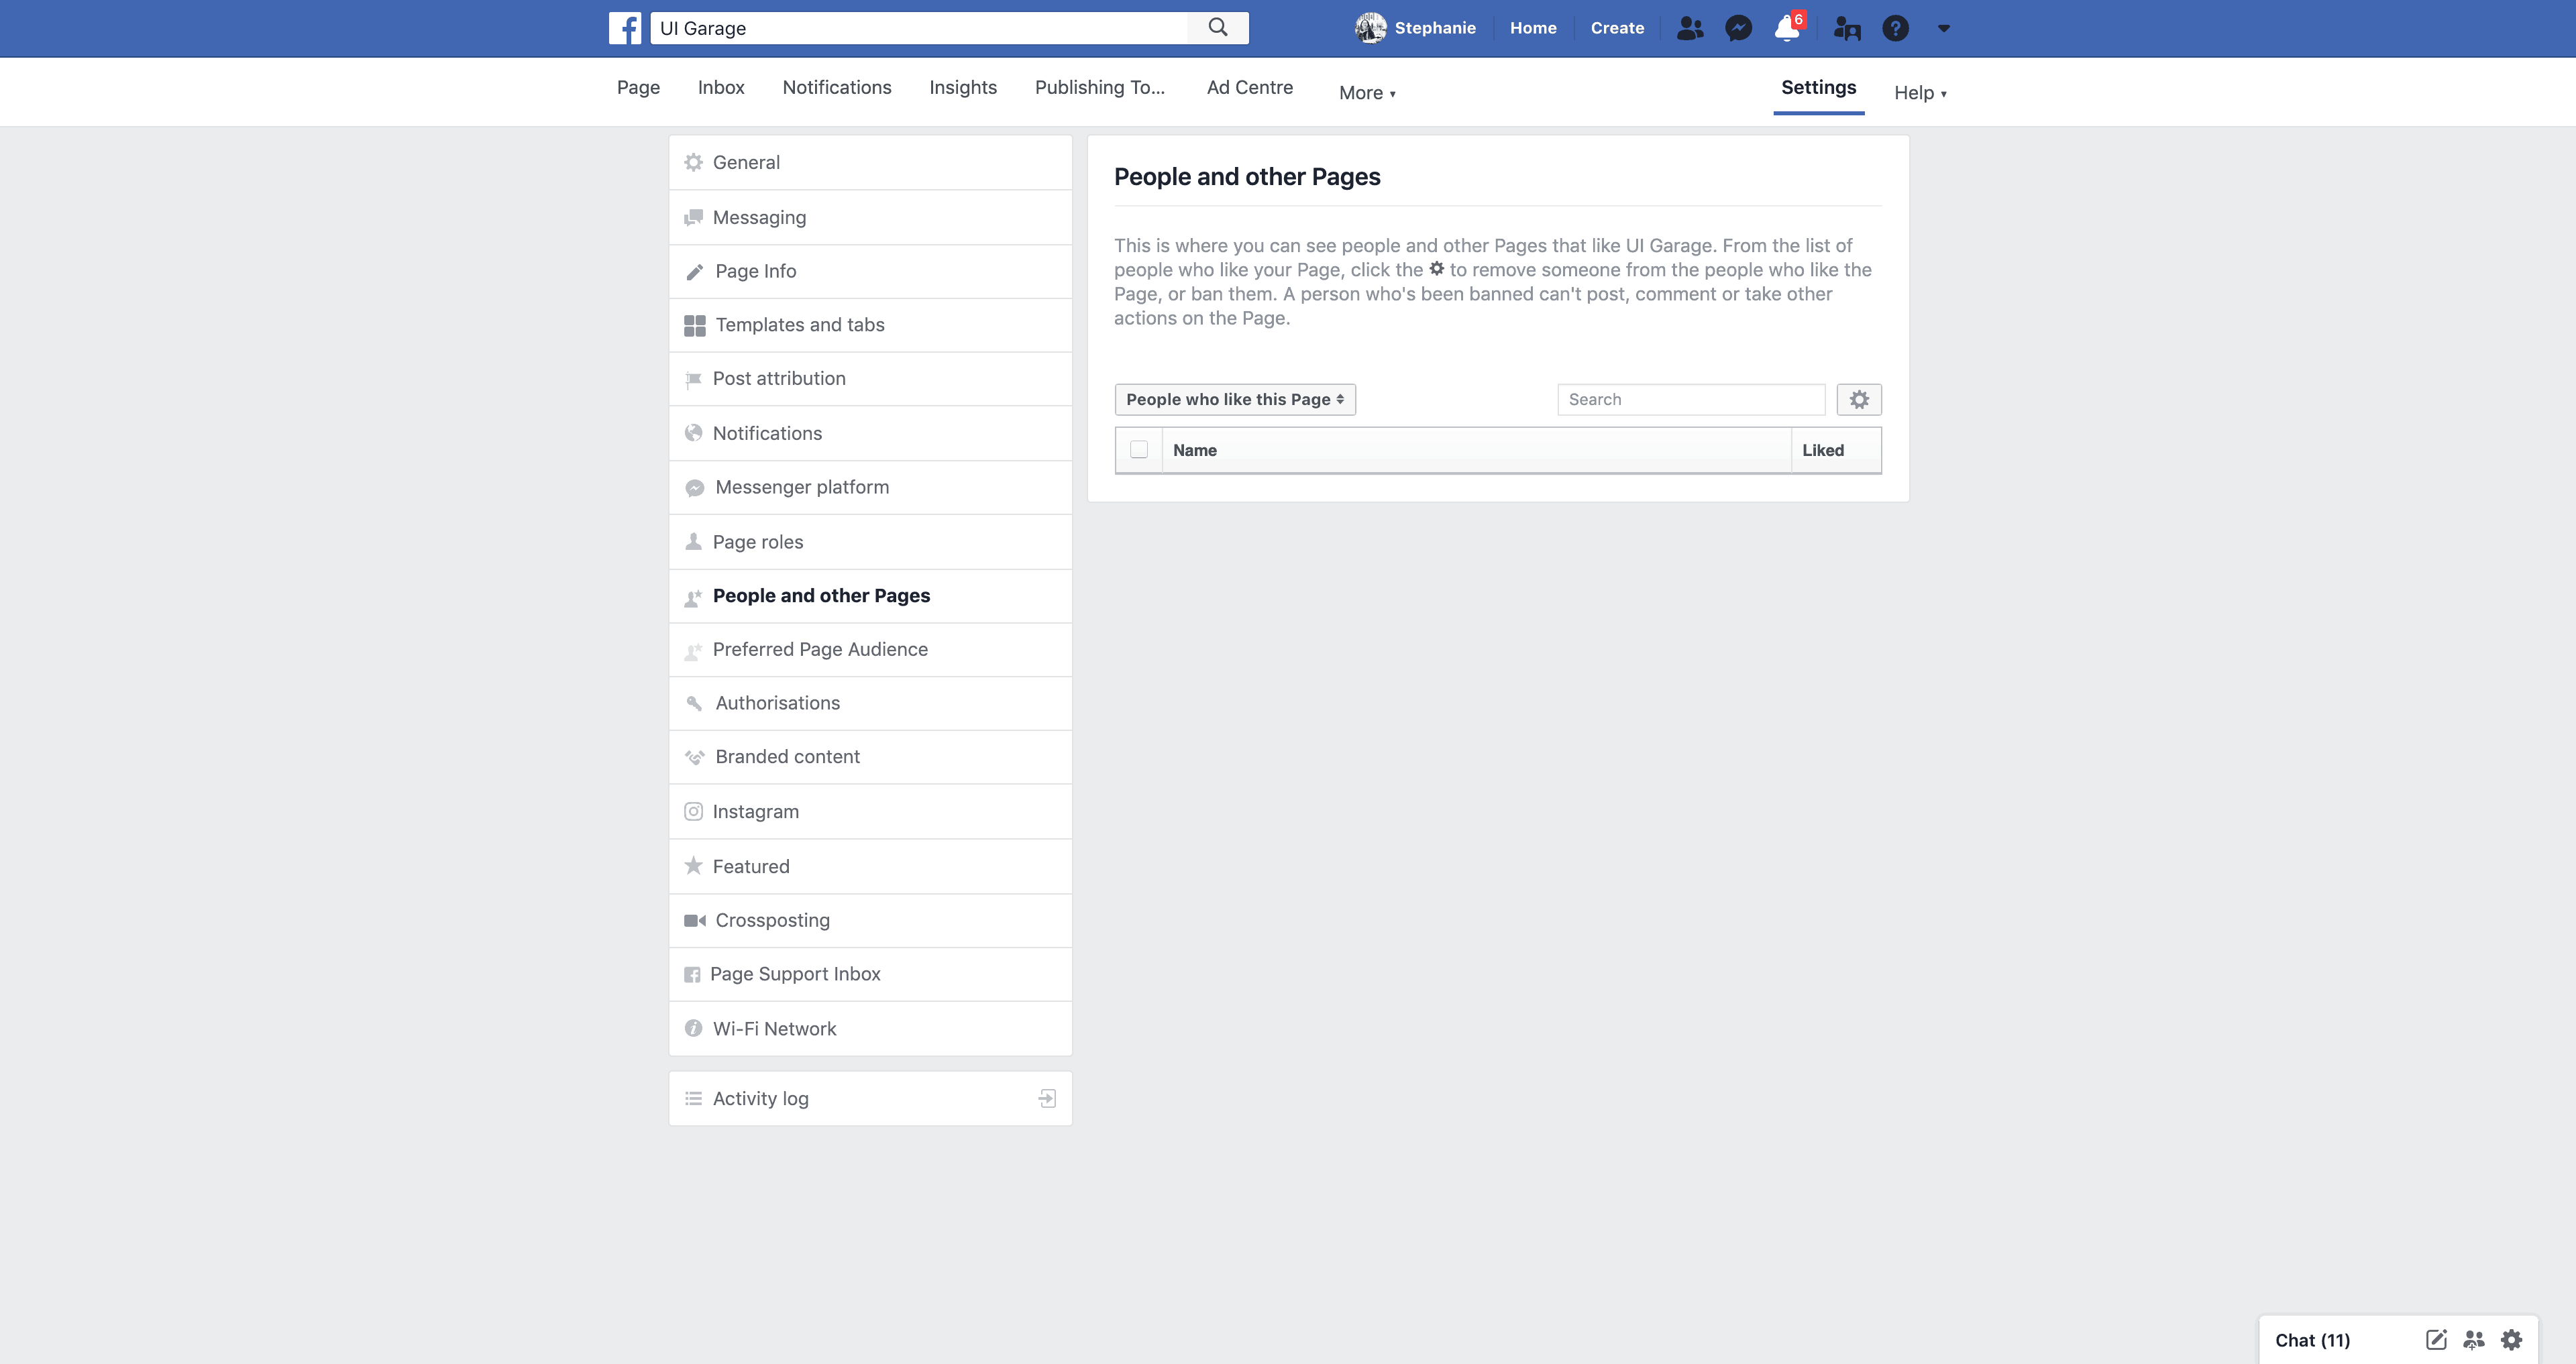 Page's people and other Pages Settings by Facebook Settings Web  - UI Garage - The database of UI